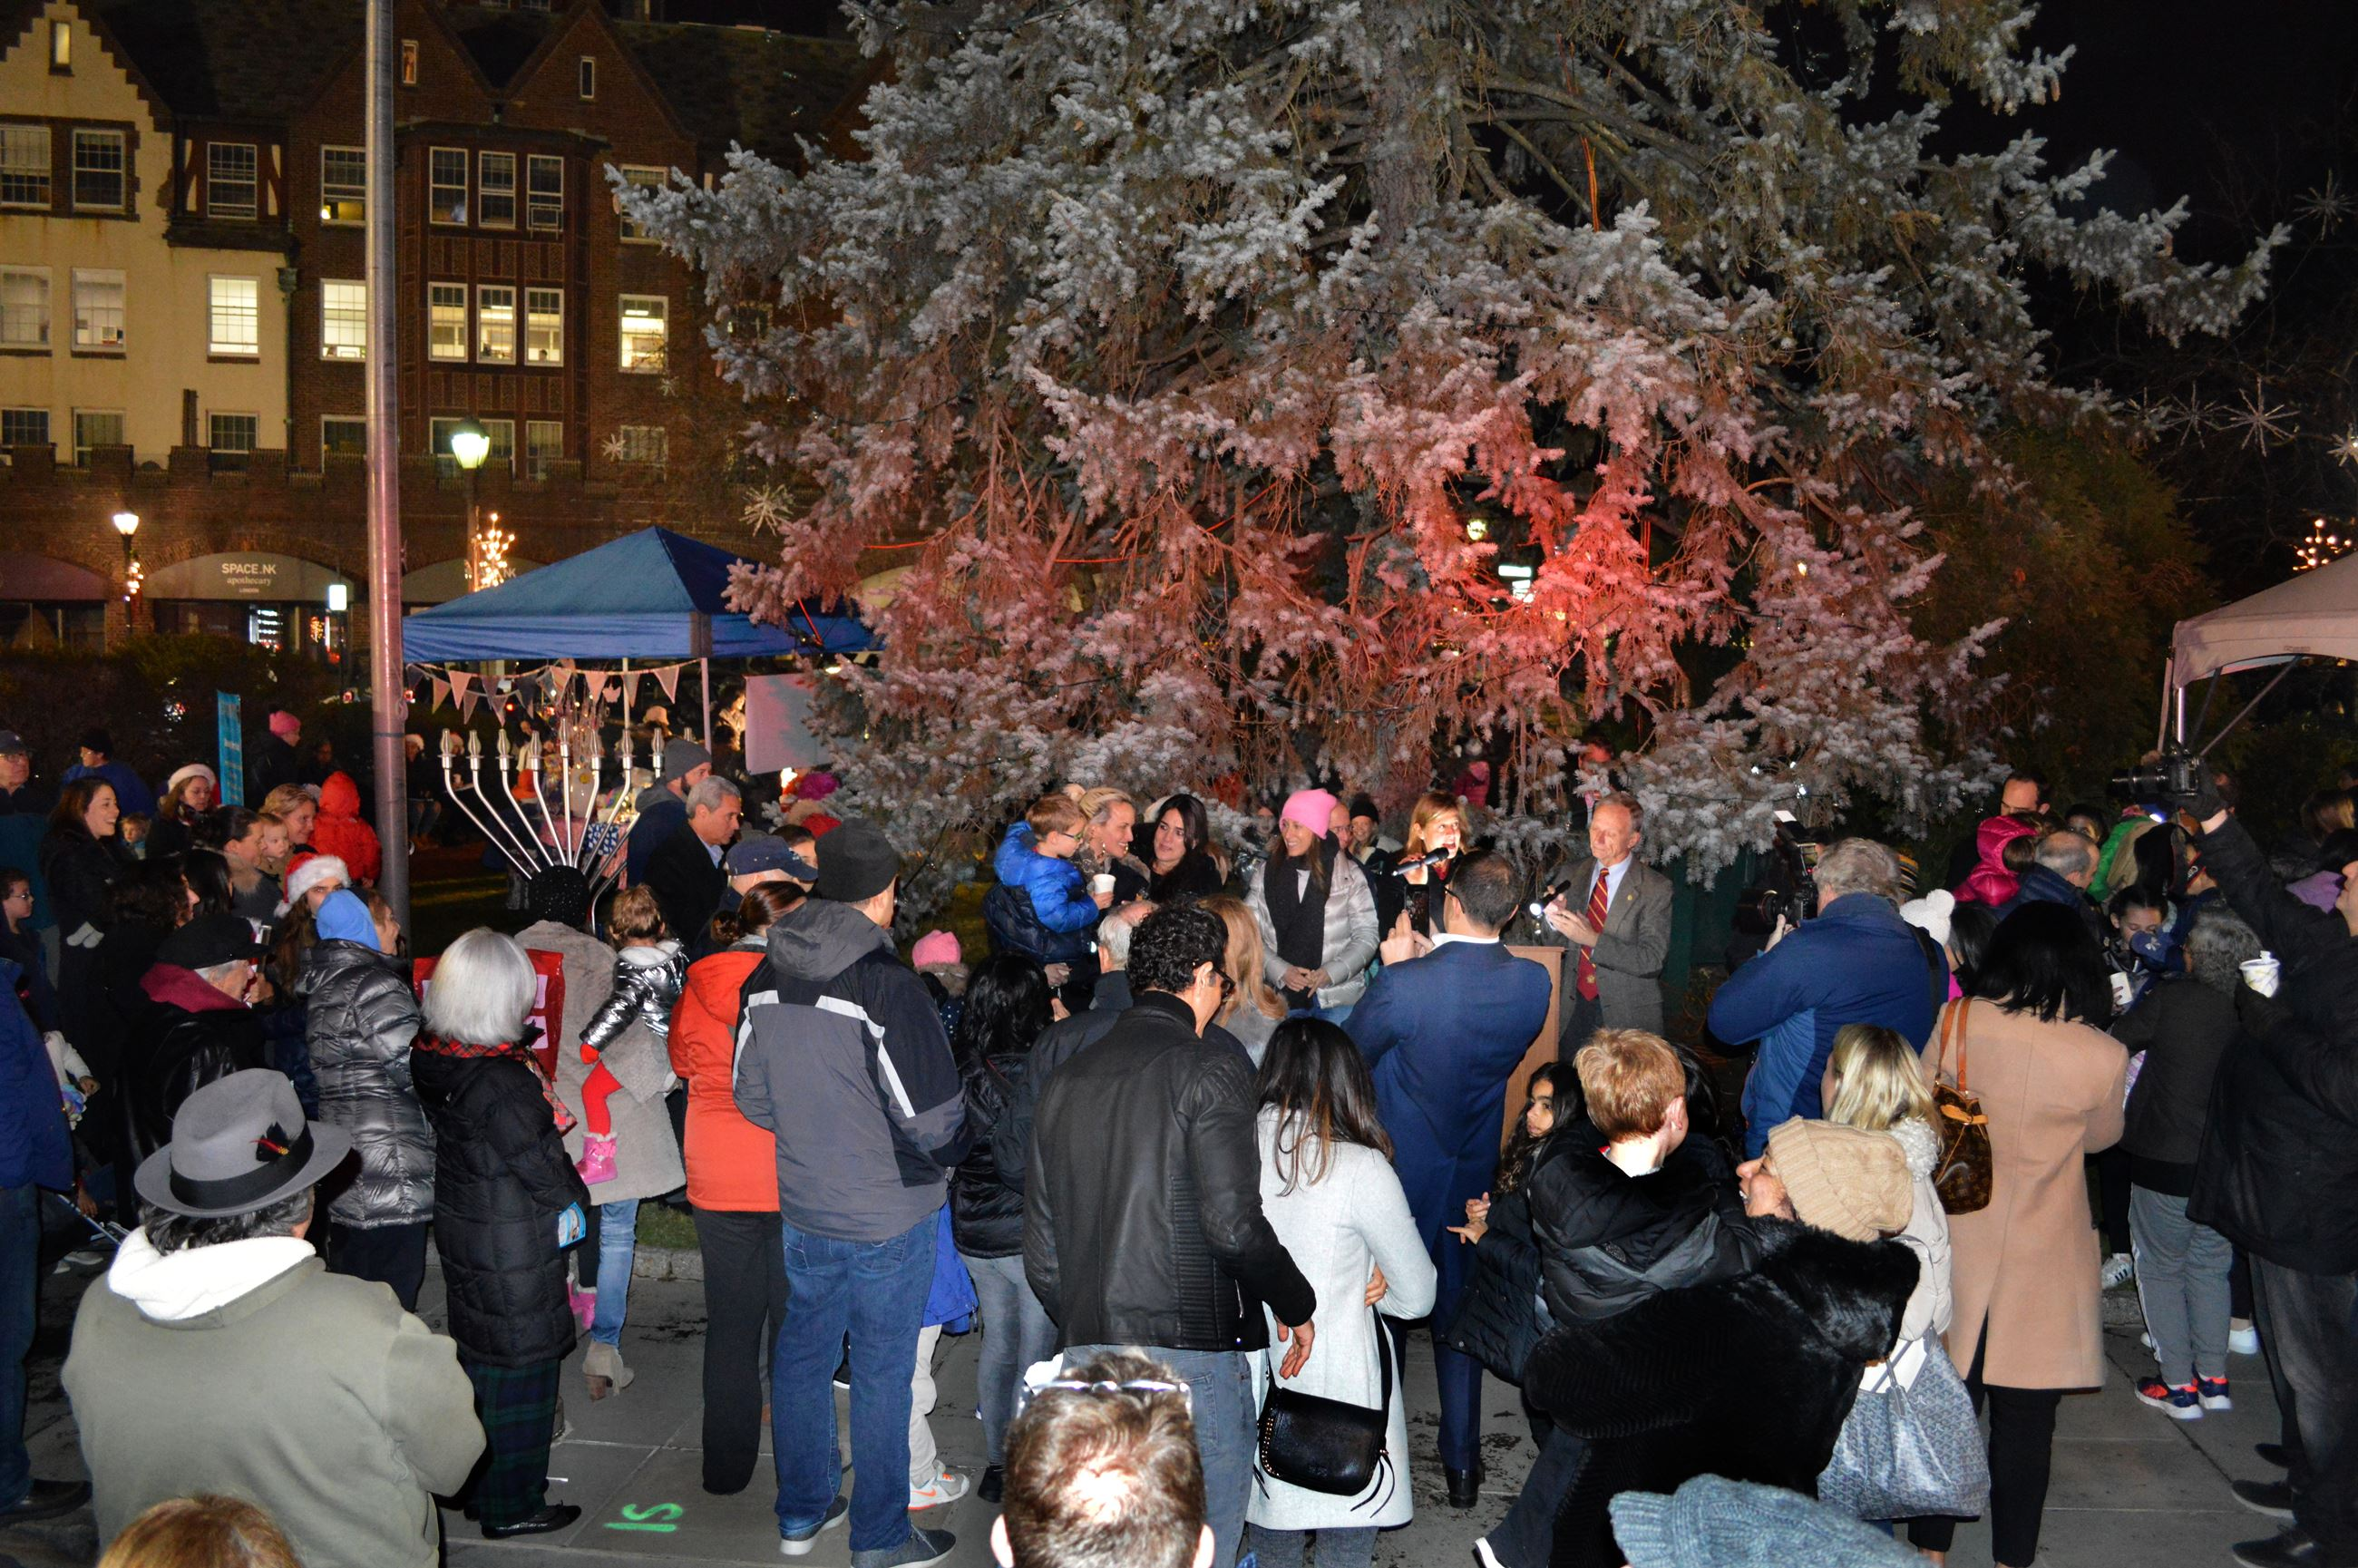 Boniface Circle Holiday Lights Ceremony